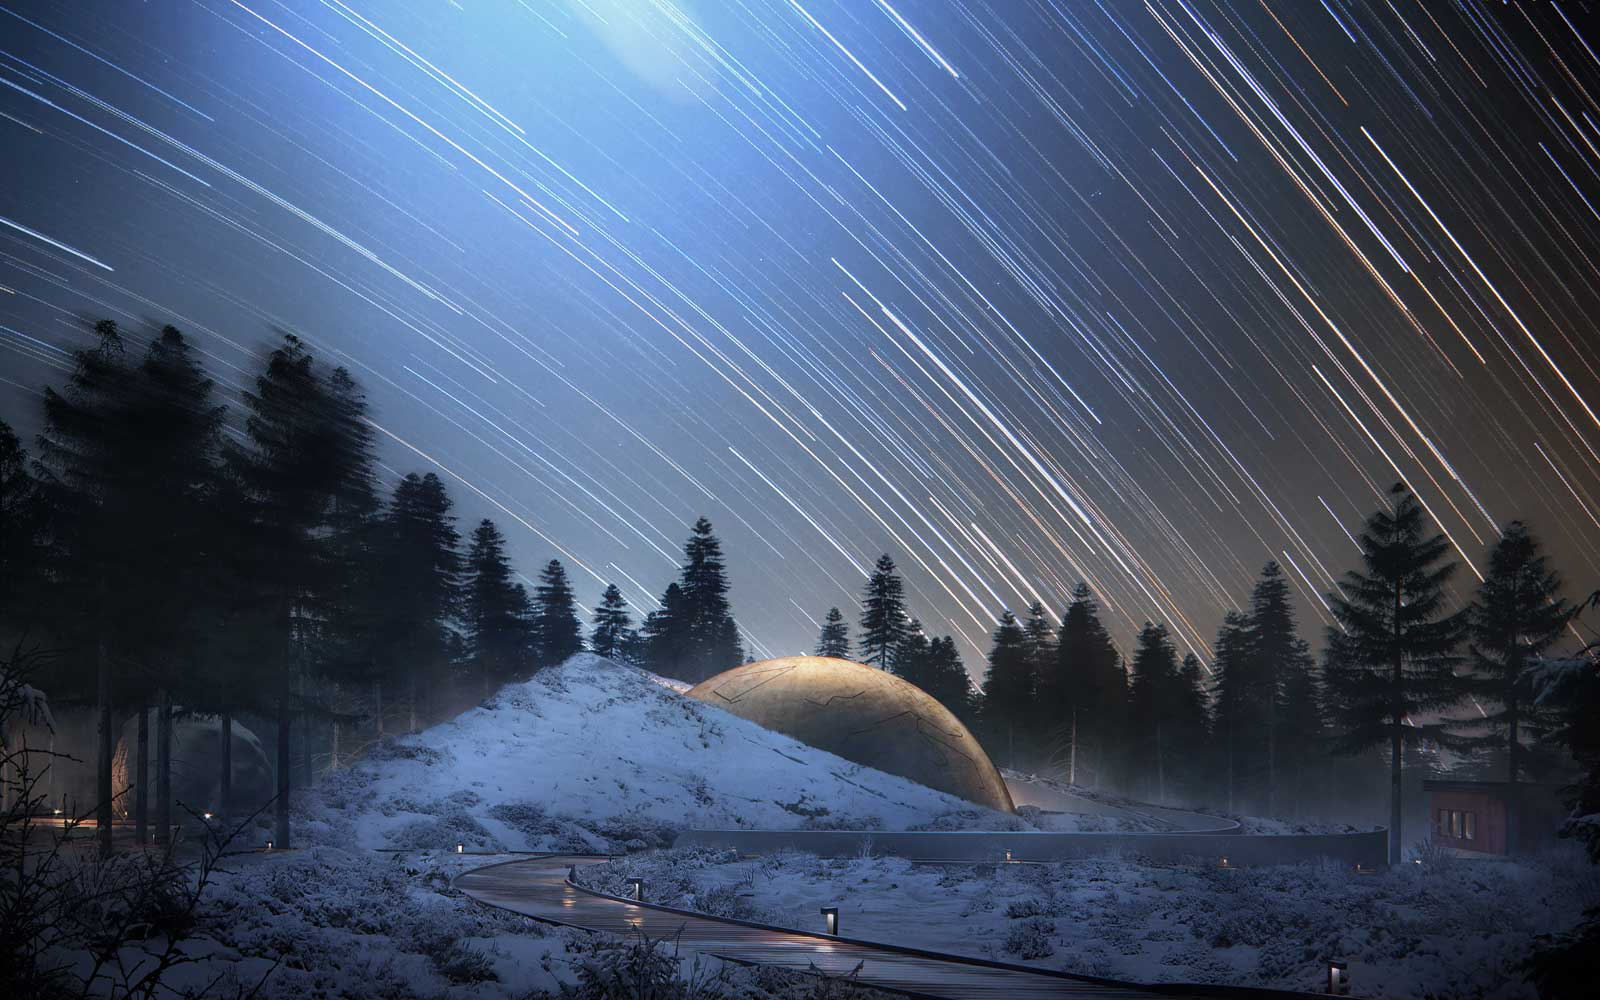 Sleep Beneath the Northern Lights in Your Own Planet at This Norwegian Planetarium